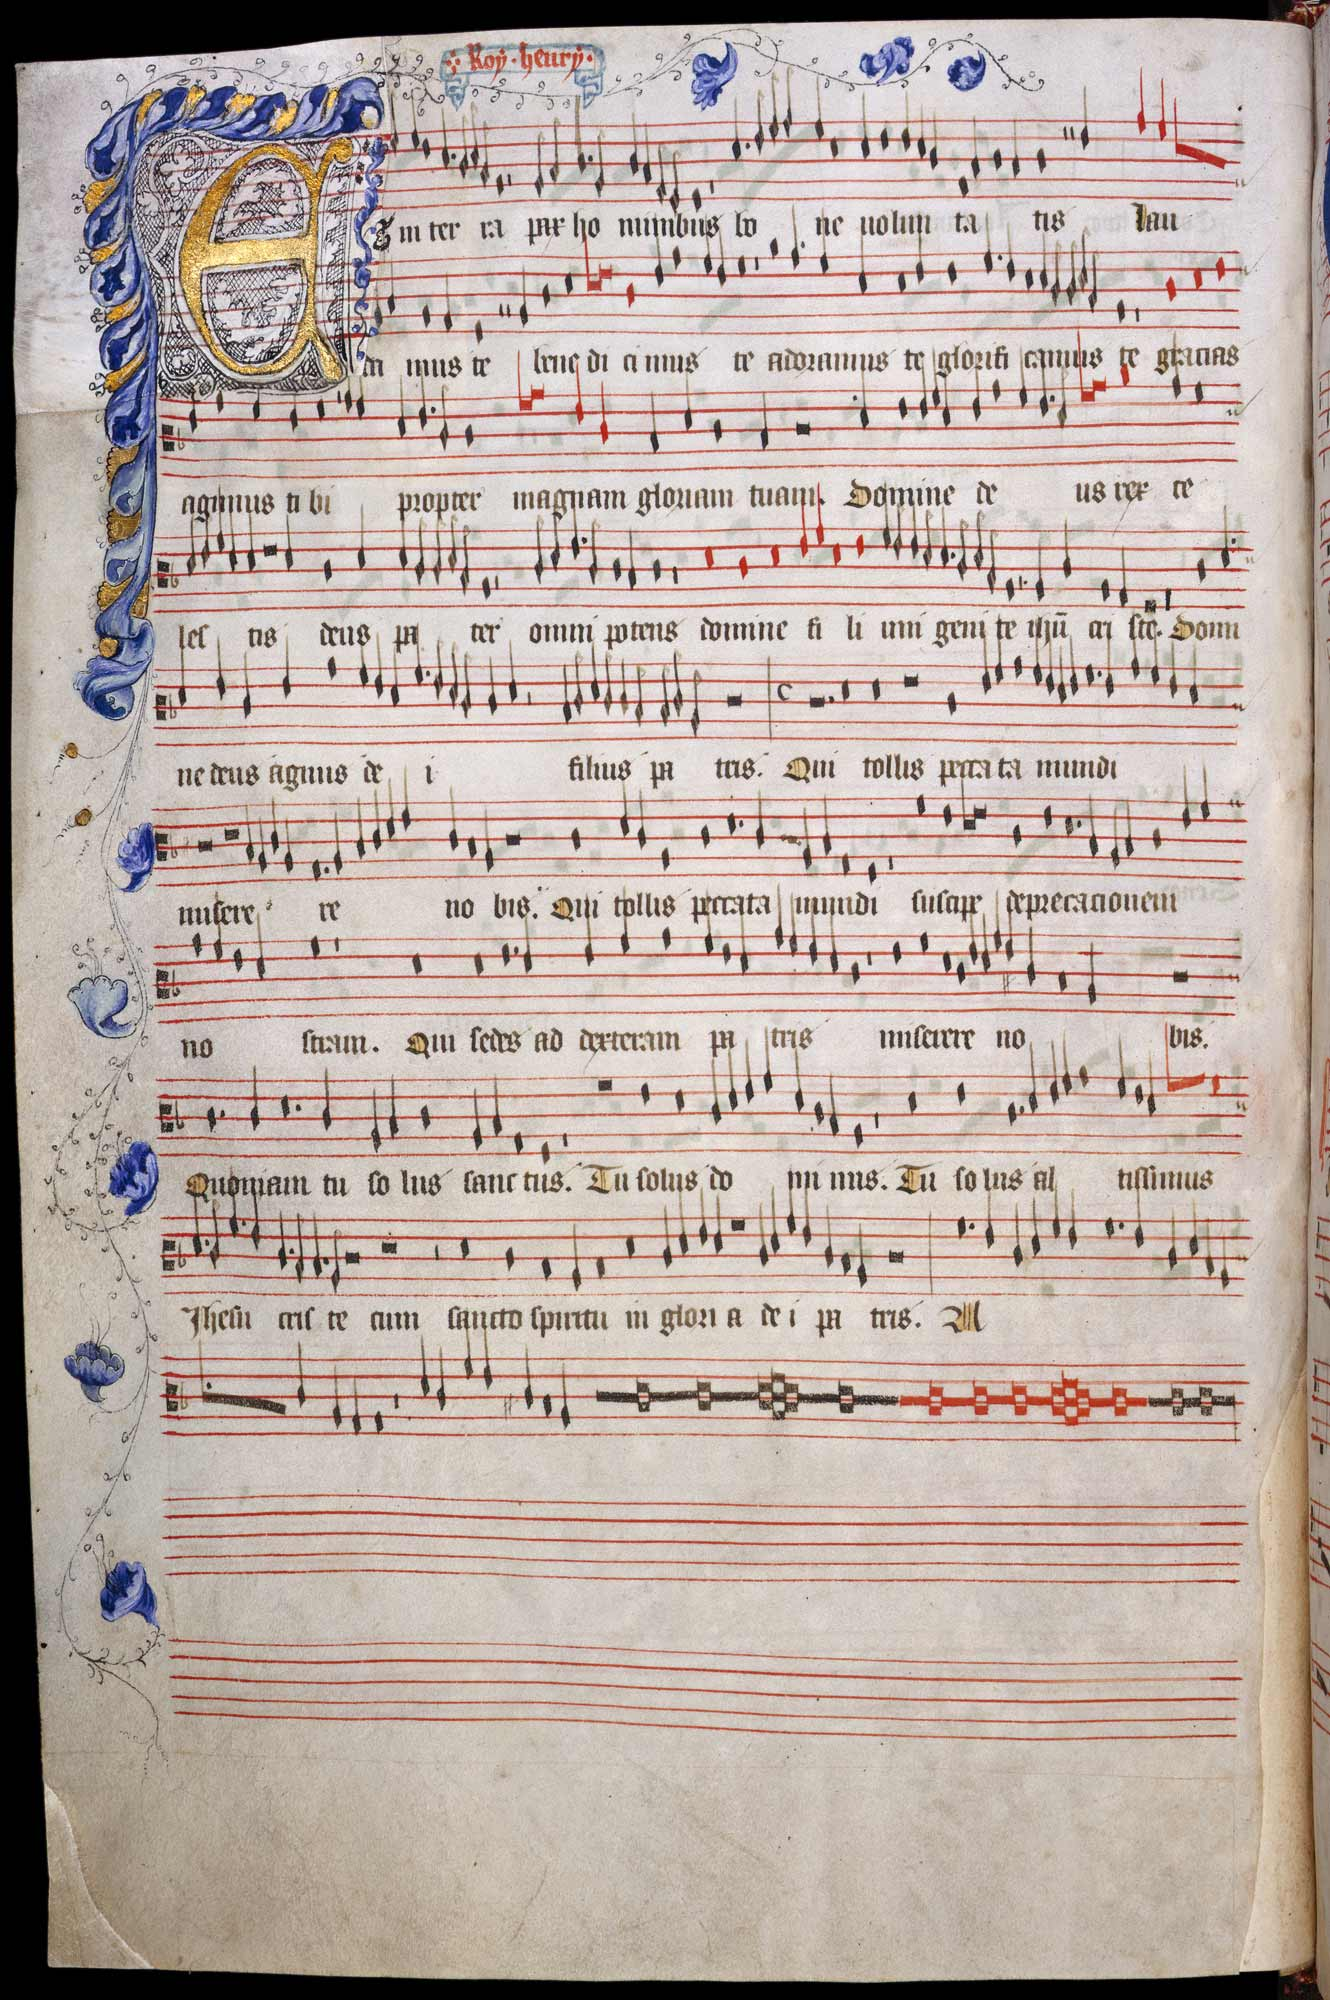 Old Hall Manuscript - The British Library